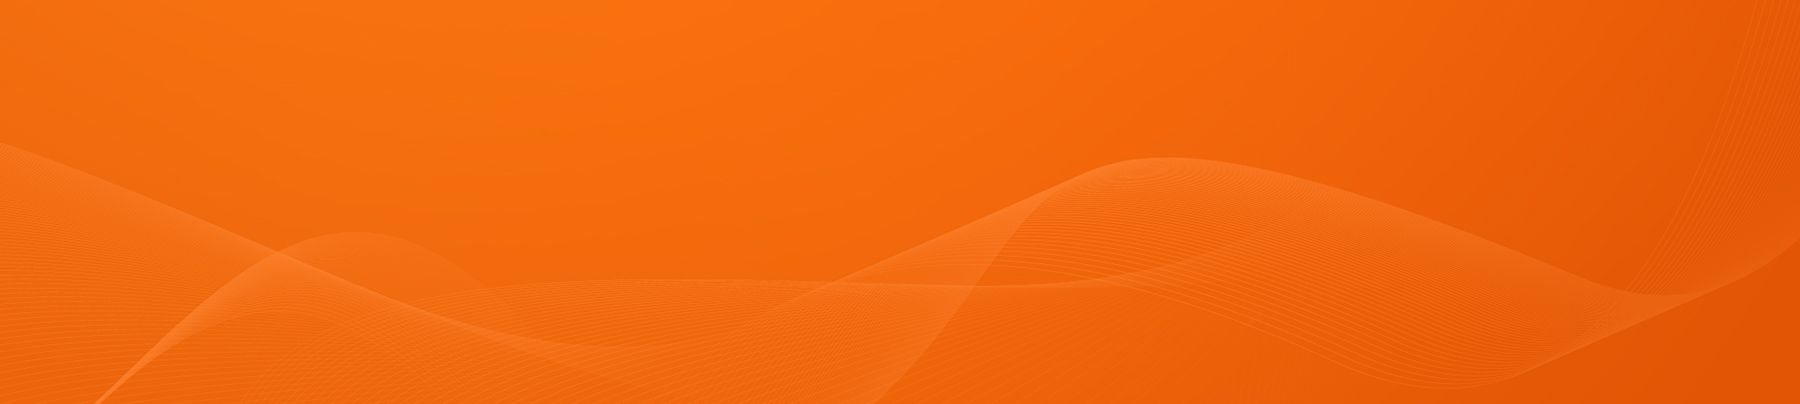 orange_bg-compressed